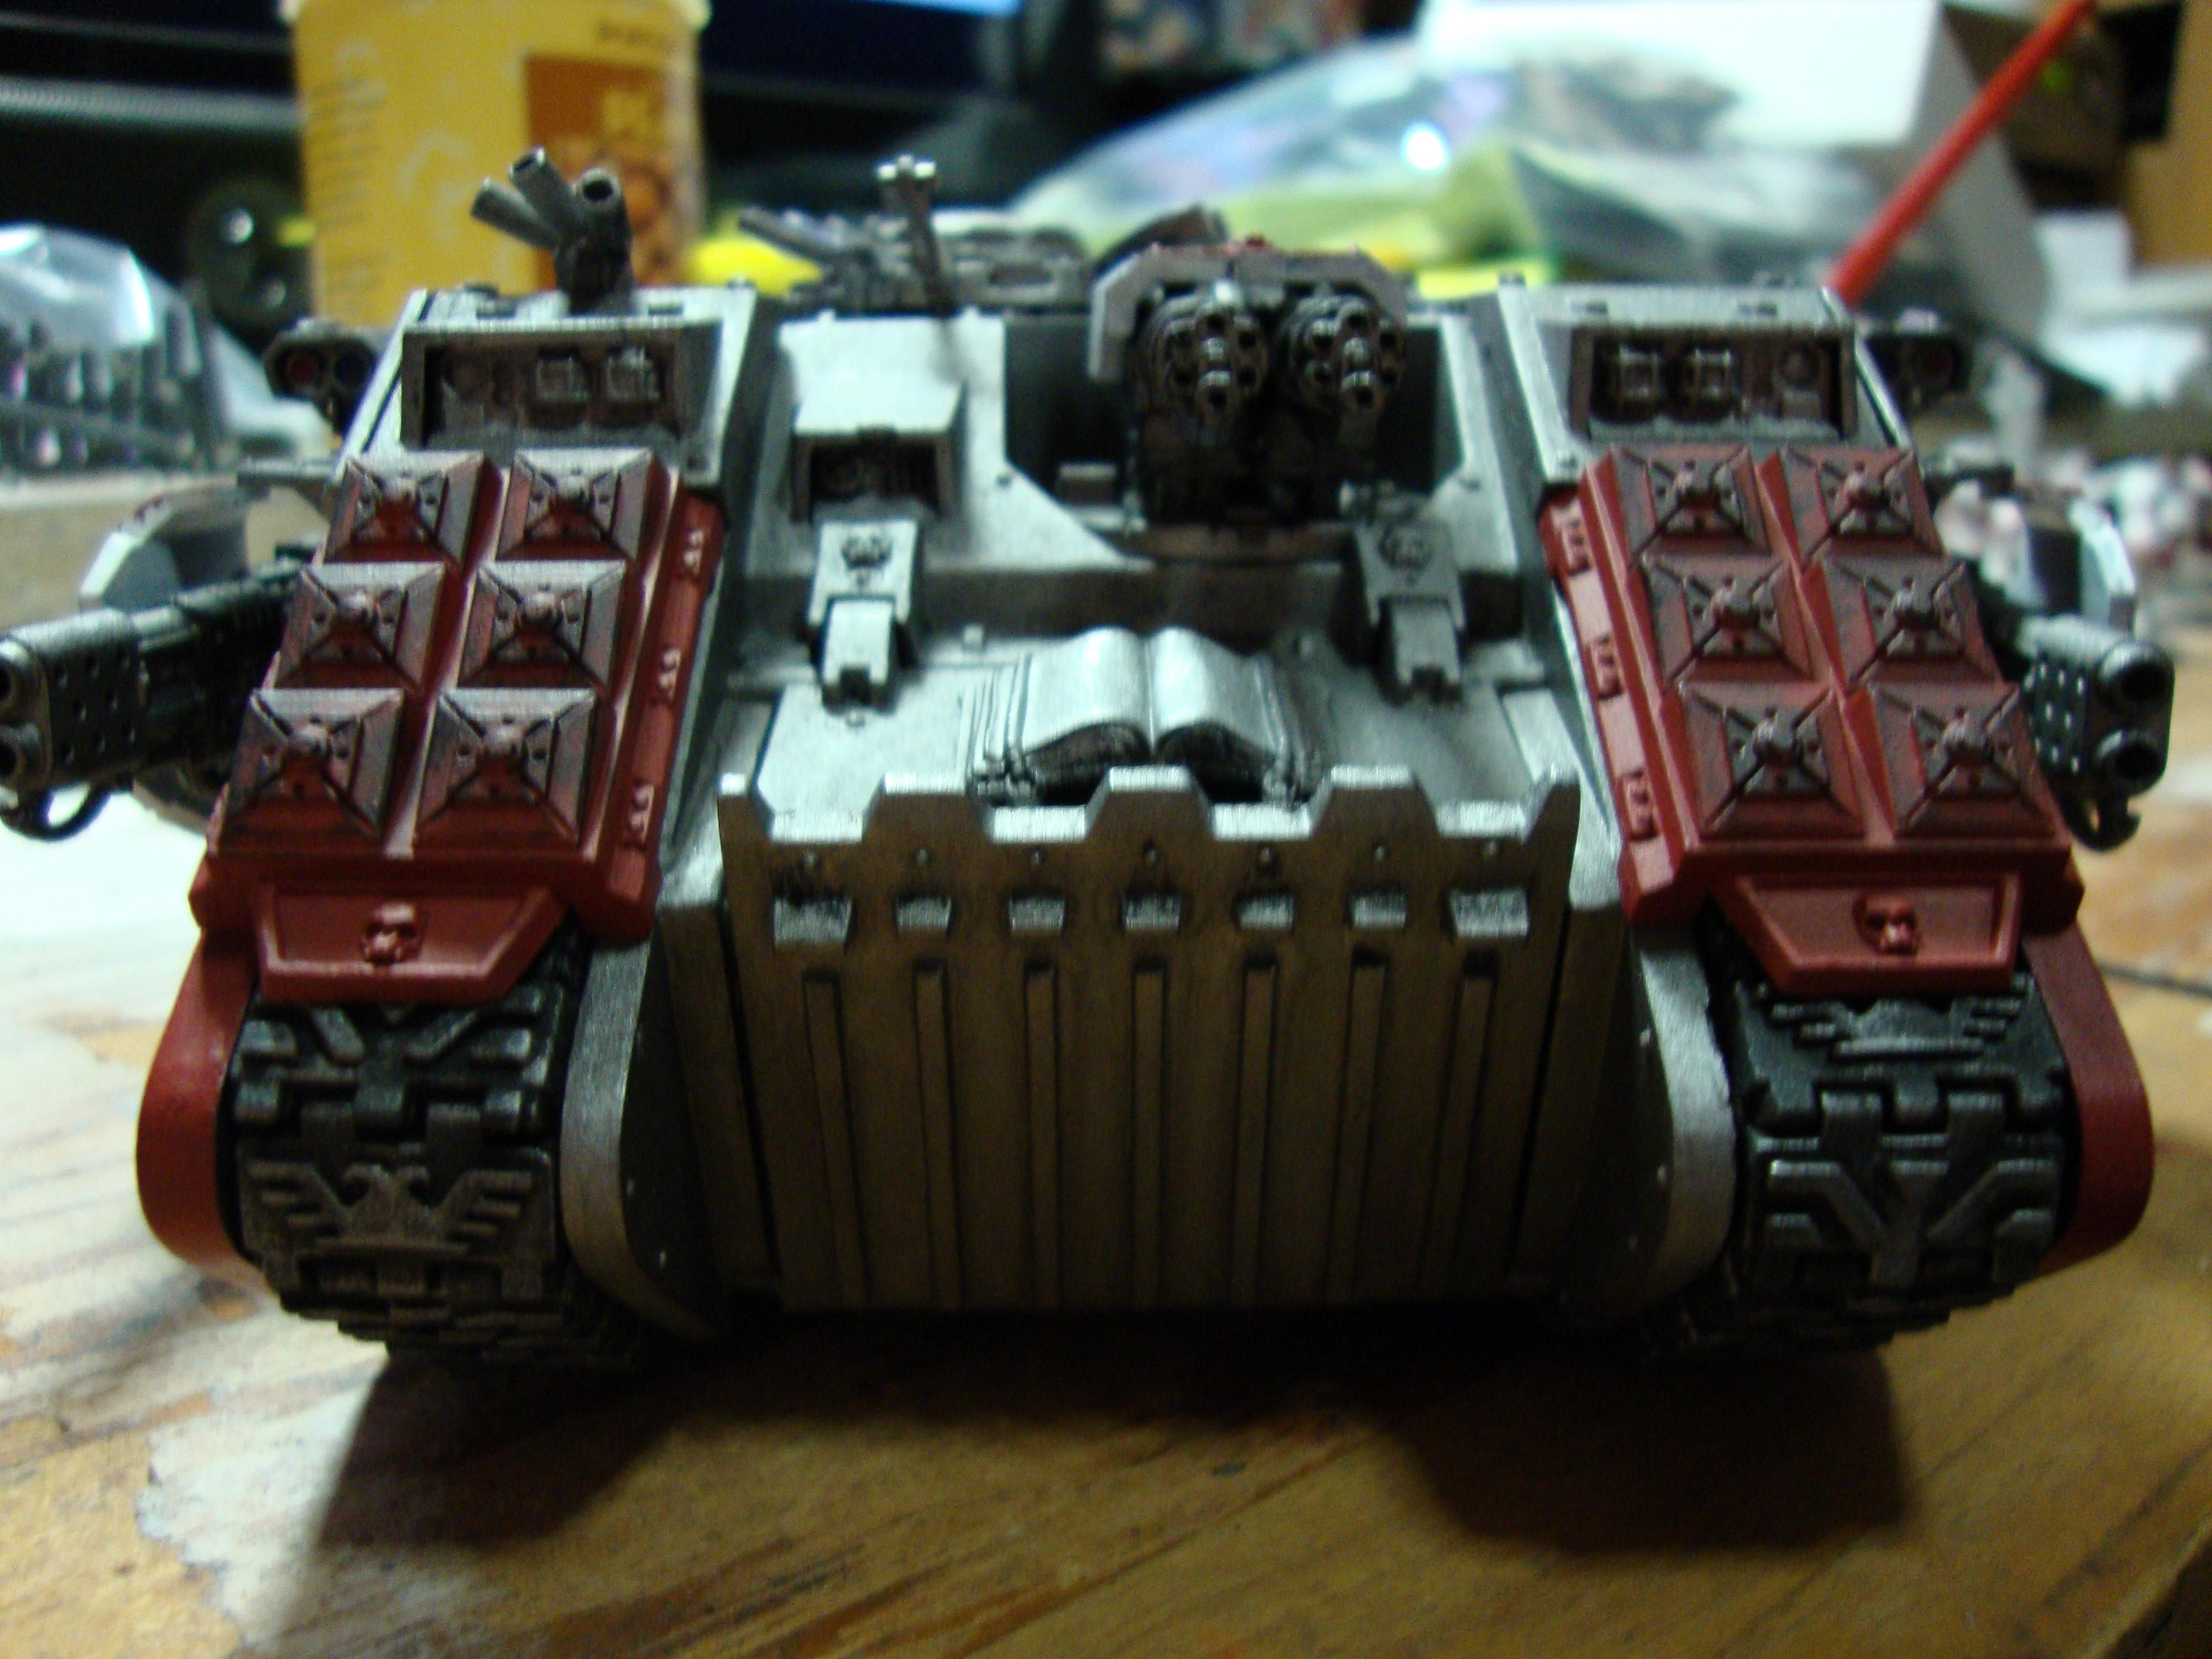 Wasn't sure about the fragmentation launchers on the treads - let me know what you think